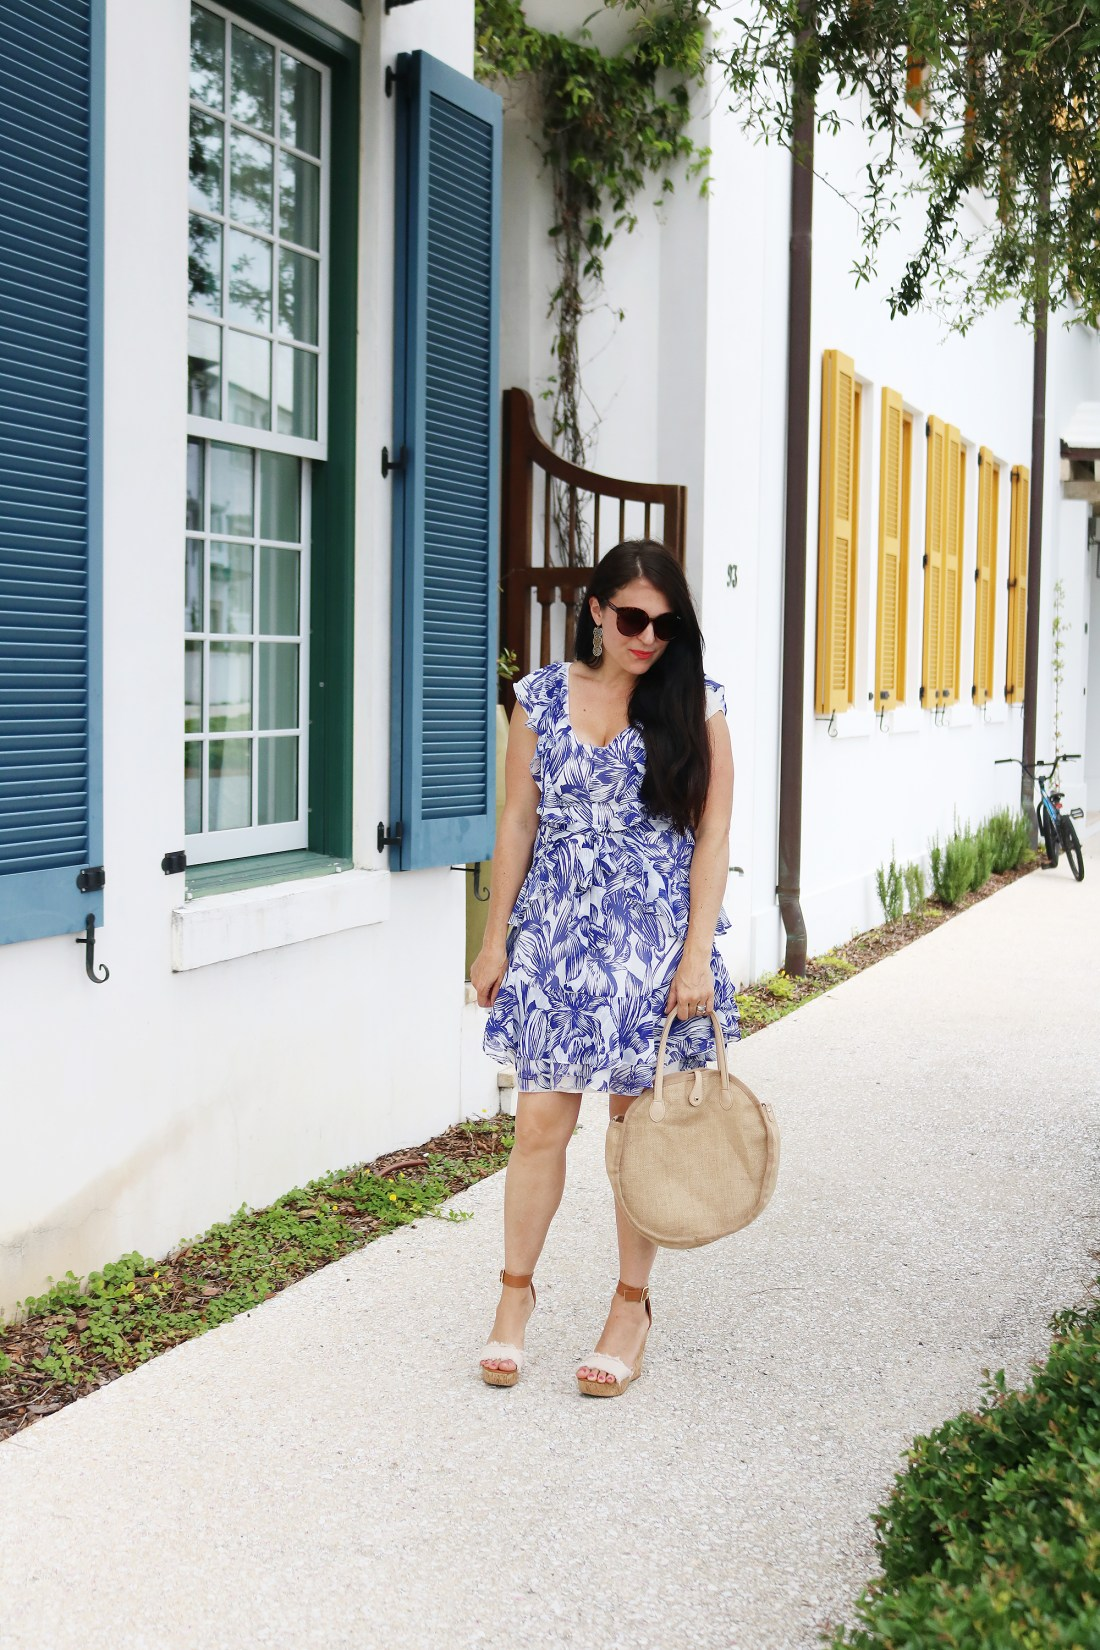 Sharing the top Summer Trend Floral Ruffle Wrap Dresses || Darling Darleen #floraldres #wrapdress #summertrend #darlingdarleen #darleenmeier